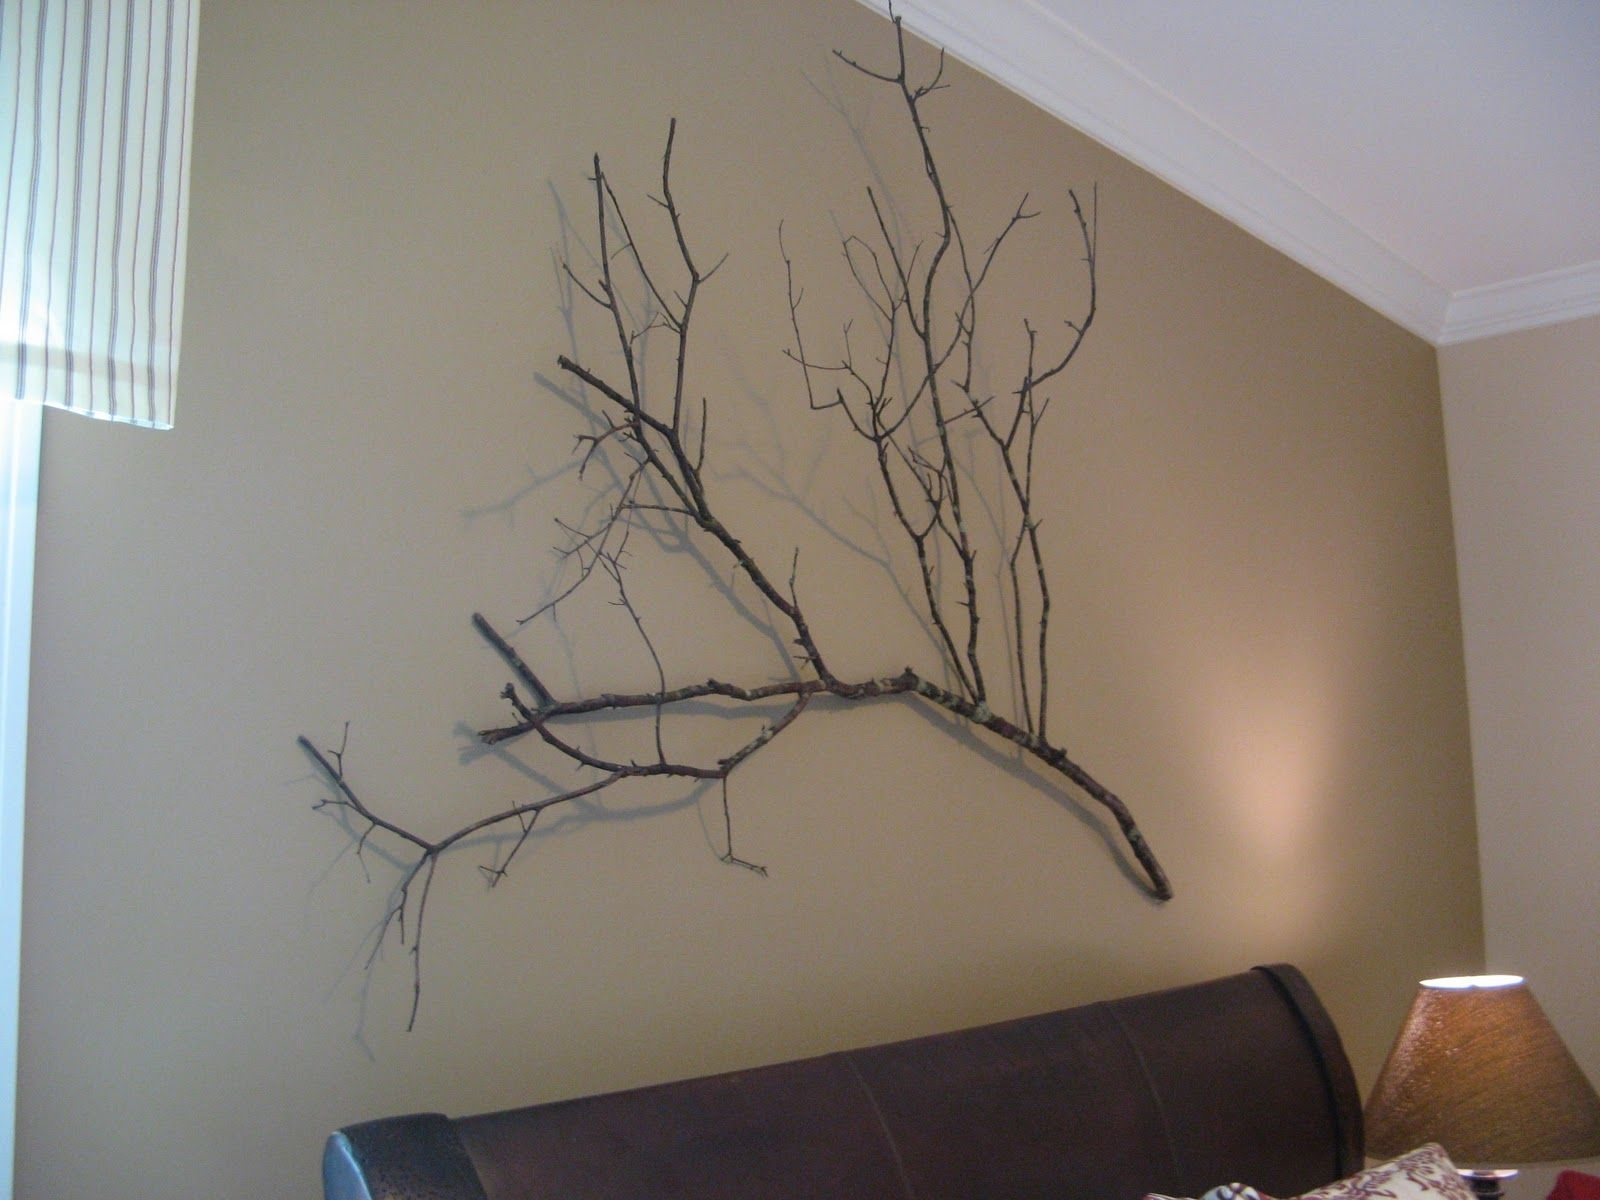 Tree Branch Wall Art, Crate And Barrel Knock Off, Rustic Wall Art Intended For Newest Crate And Barrel Wall Art (View 16 of 20)